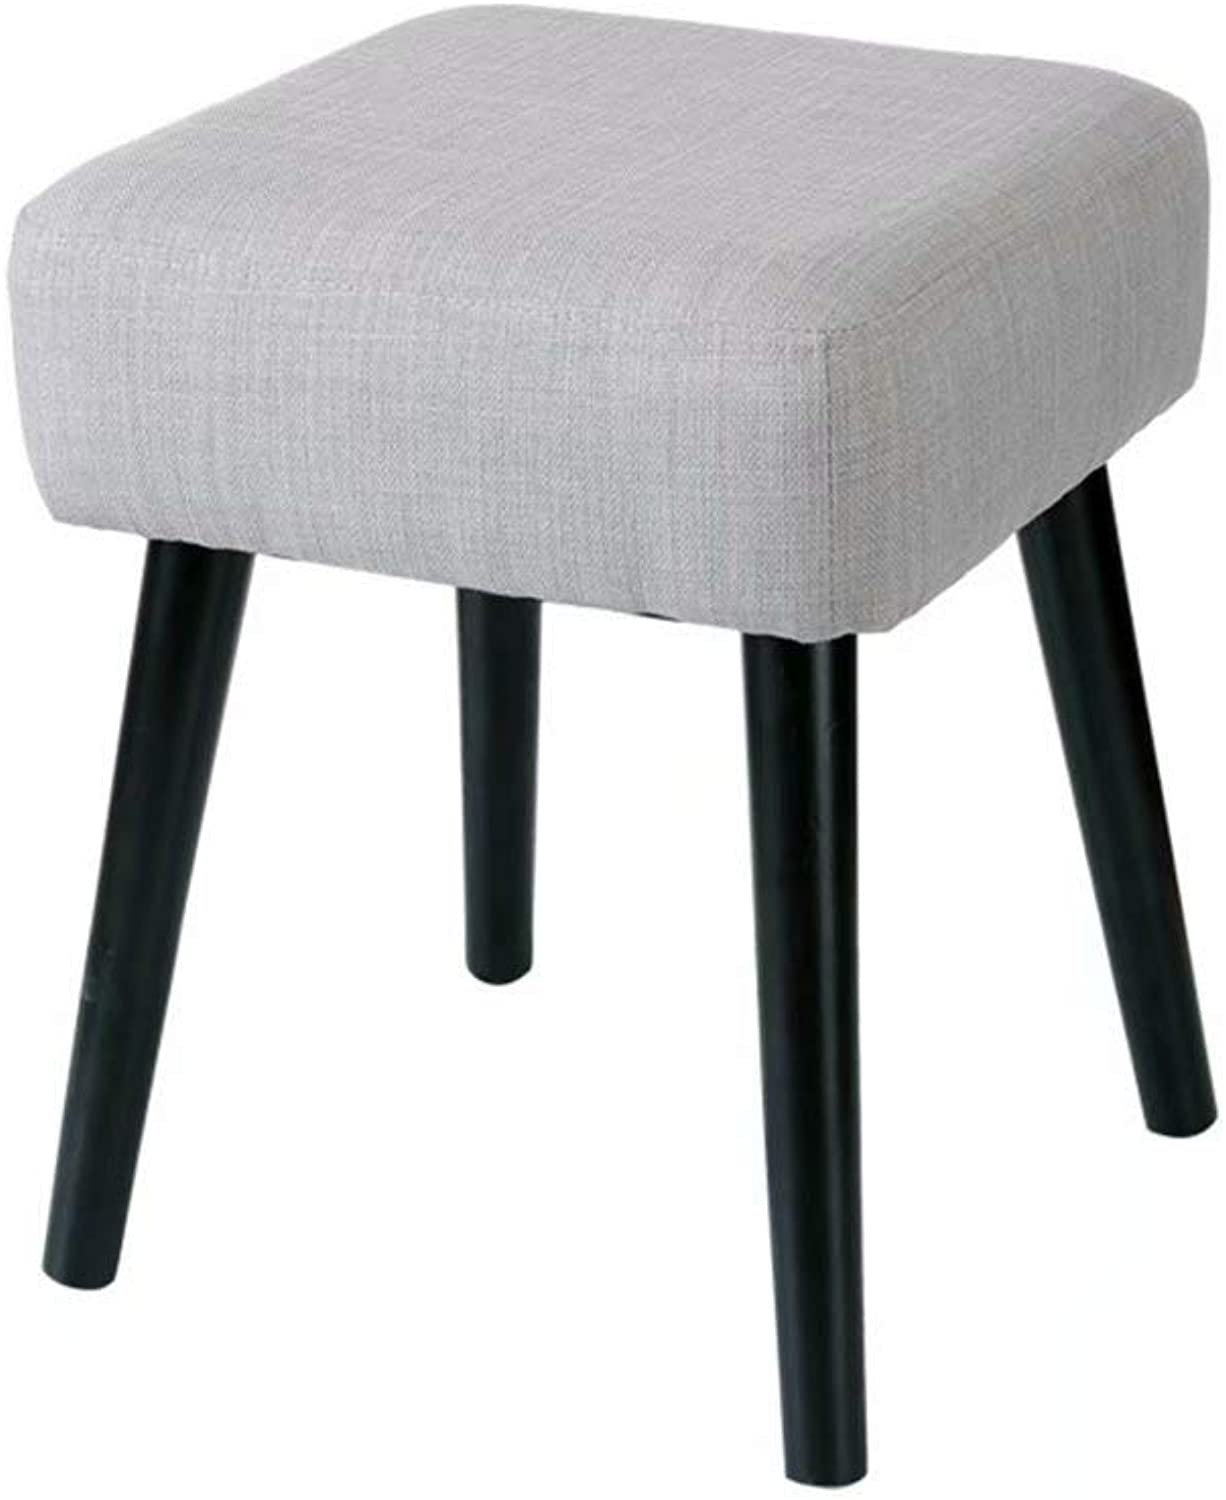 Change shoes Bench Solid Wood Stool Fabric Sofa Bench Makeup, Kitchen, Living Room Stool 4 Leg